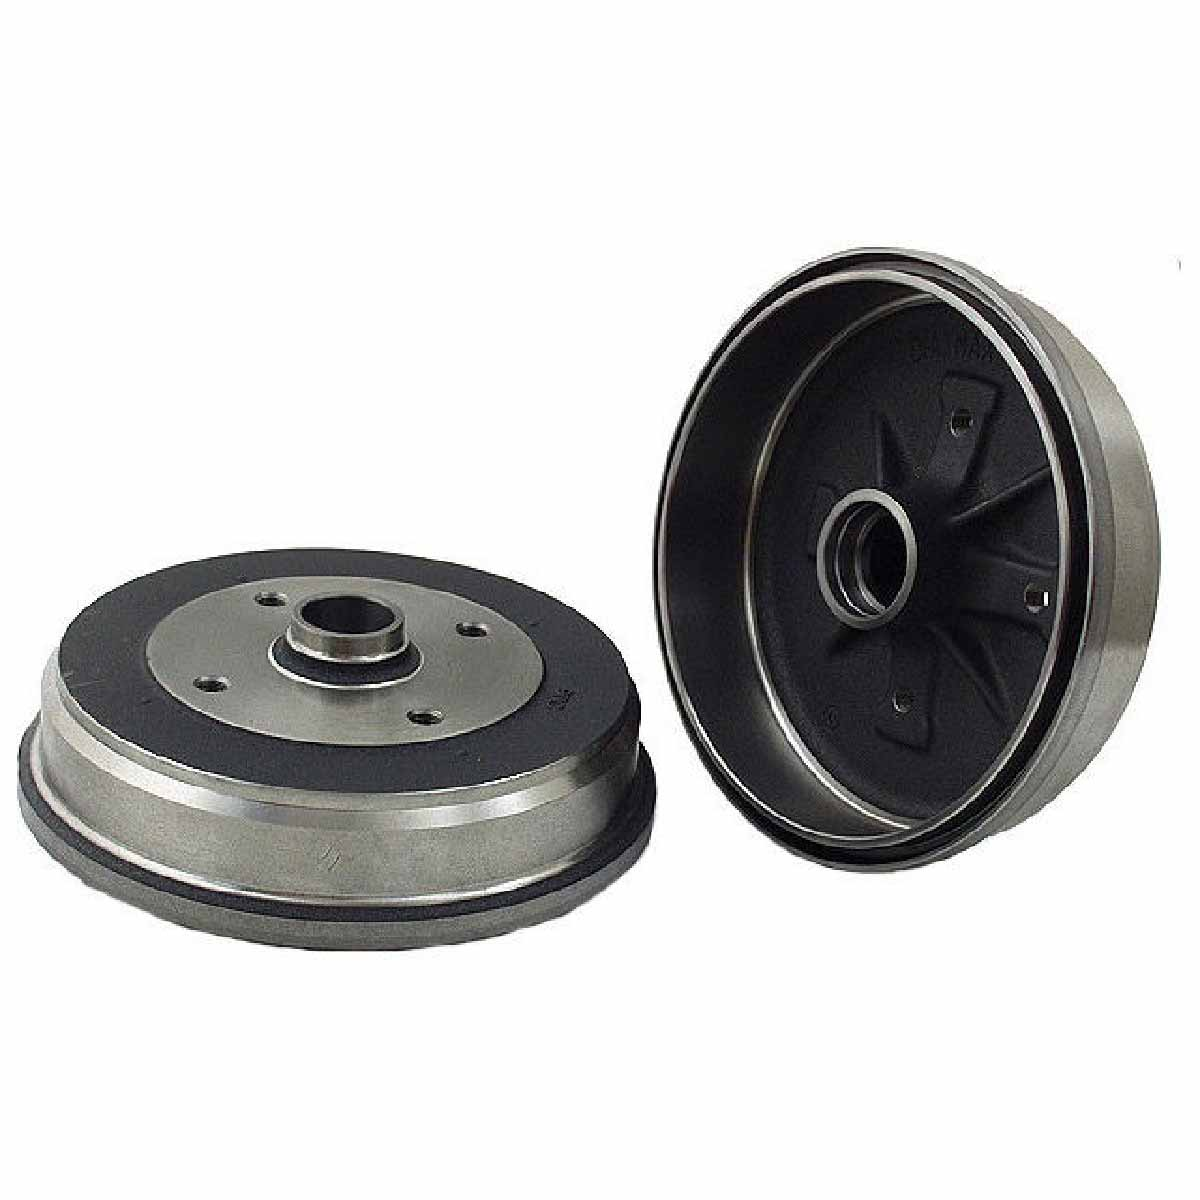 Big Discount Auto Spare Parts 12v Car Starter Motor -